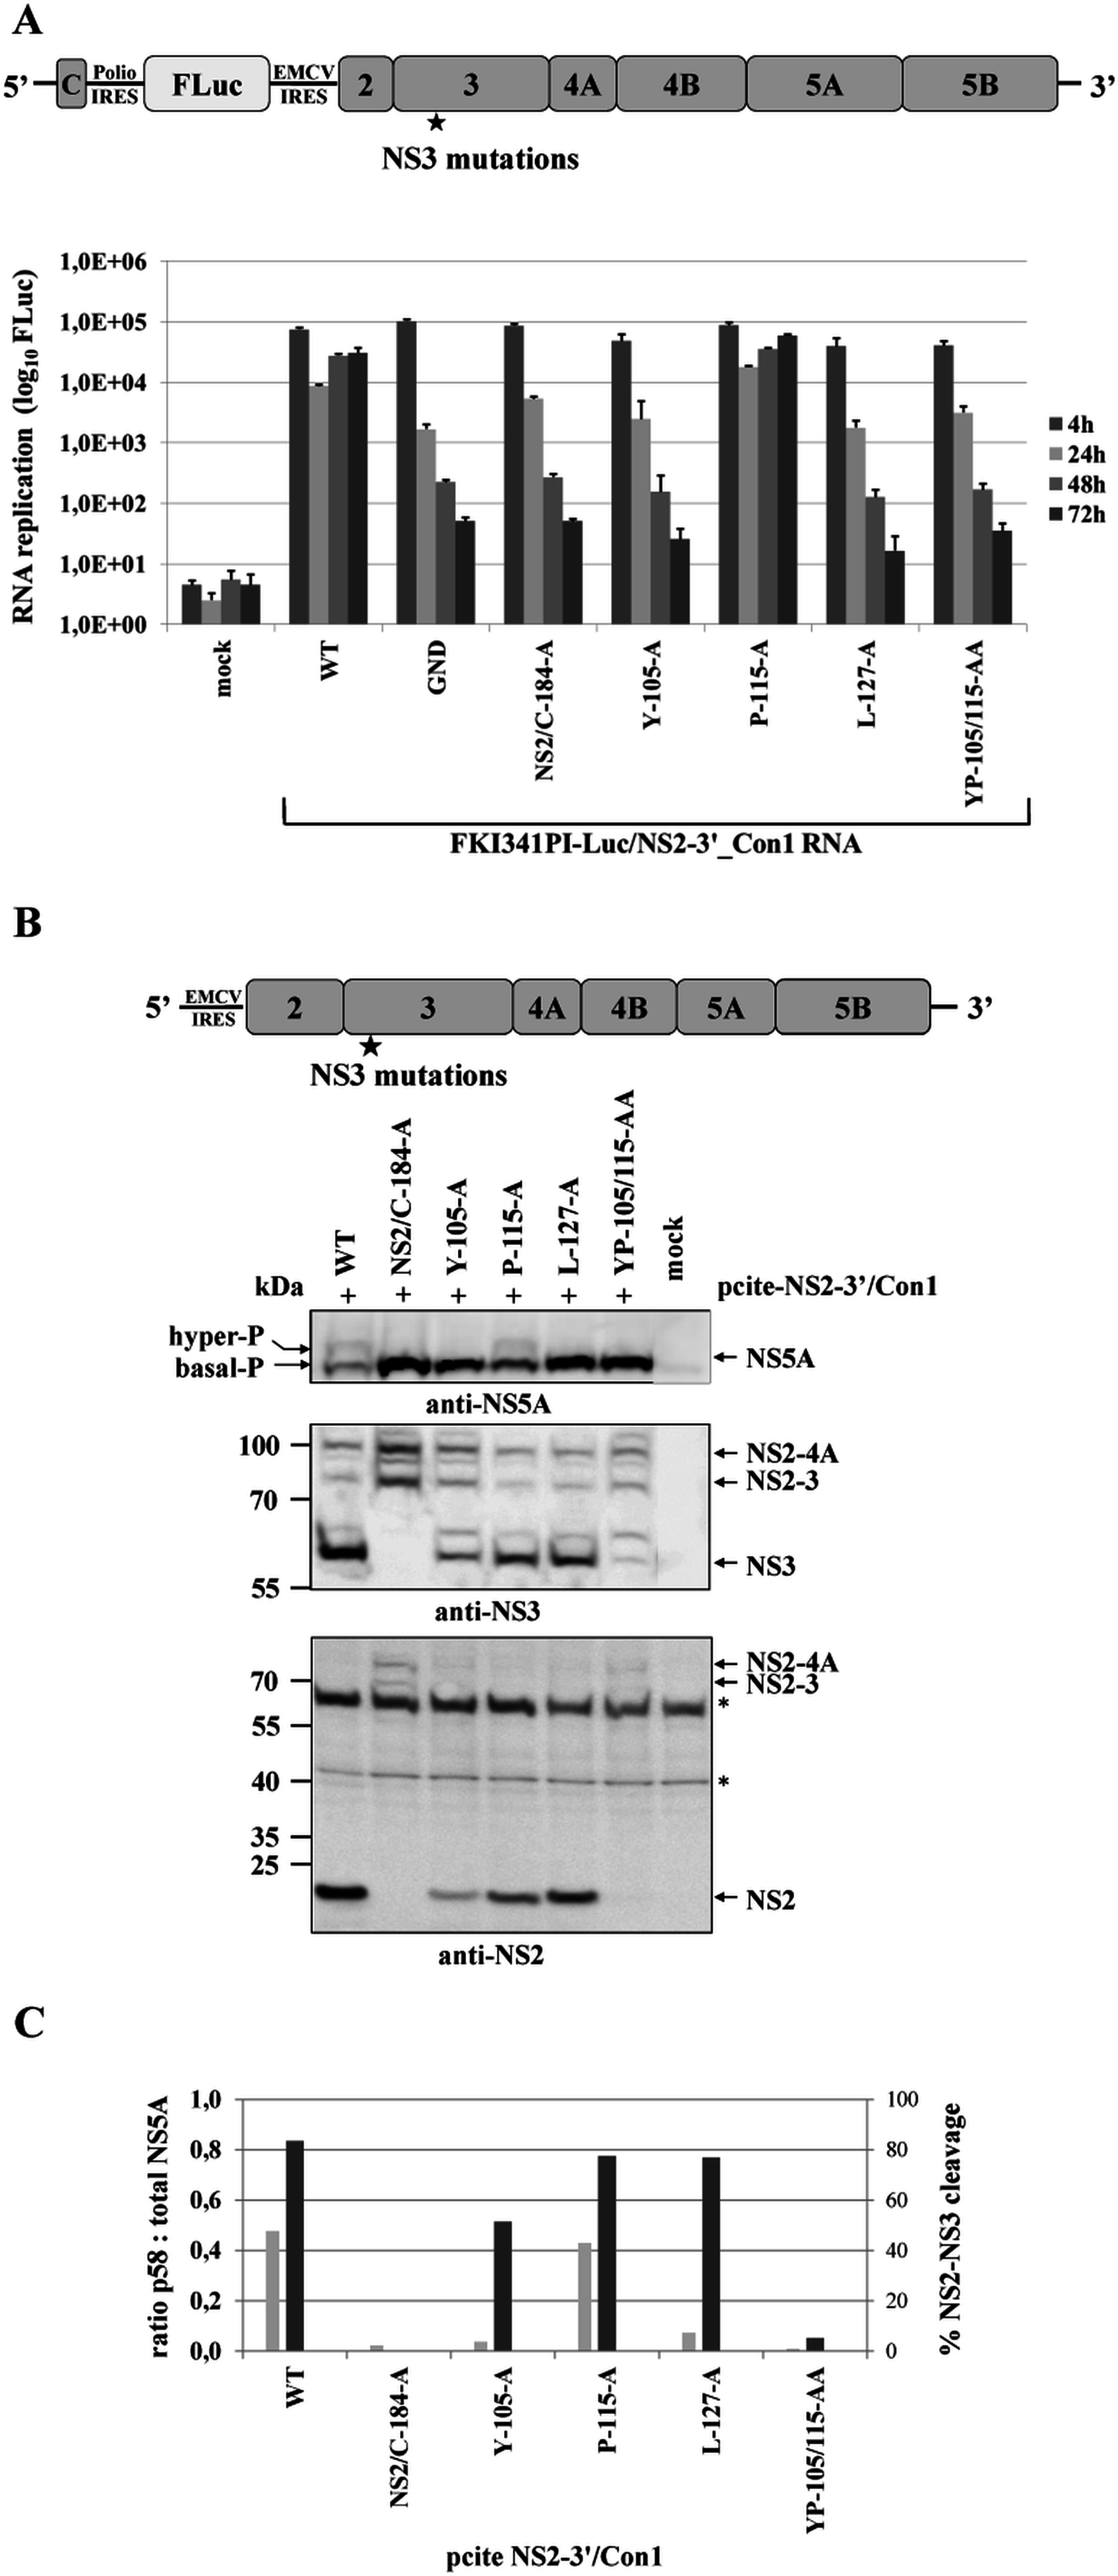 Mutational analysis of NS3 surface residues in a HCV genotype 1b NS2-5B replicon confirm the critical role of efficient NS2-NS3 cleavage for NS5A hyperphosphorylation.